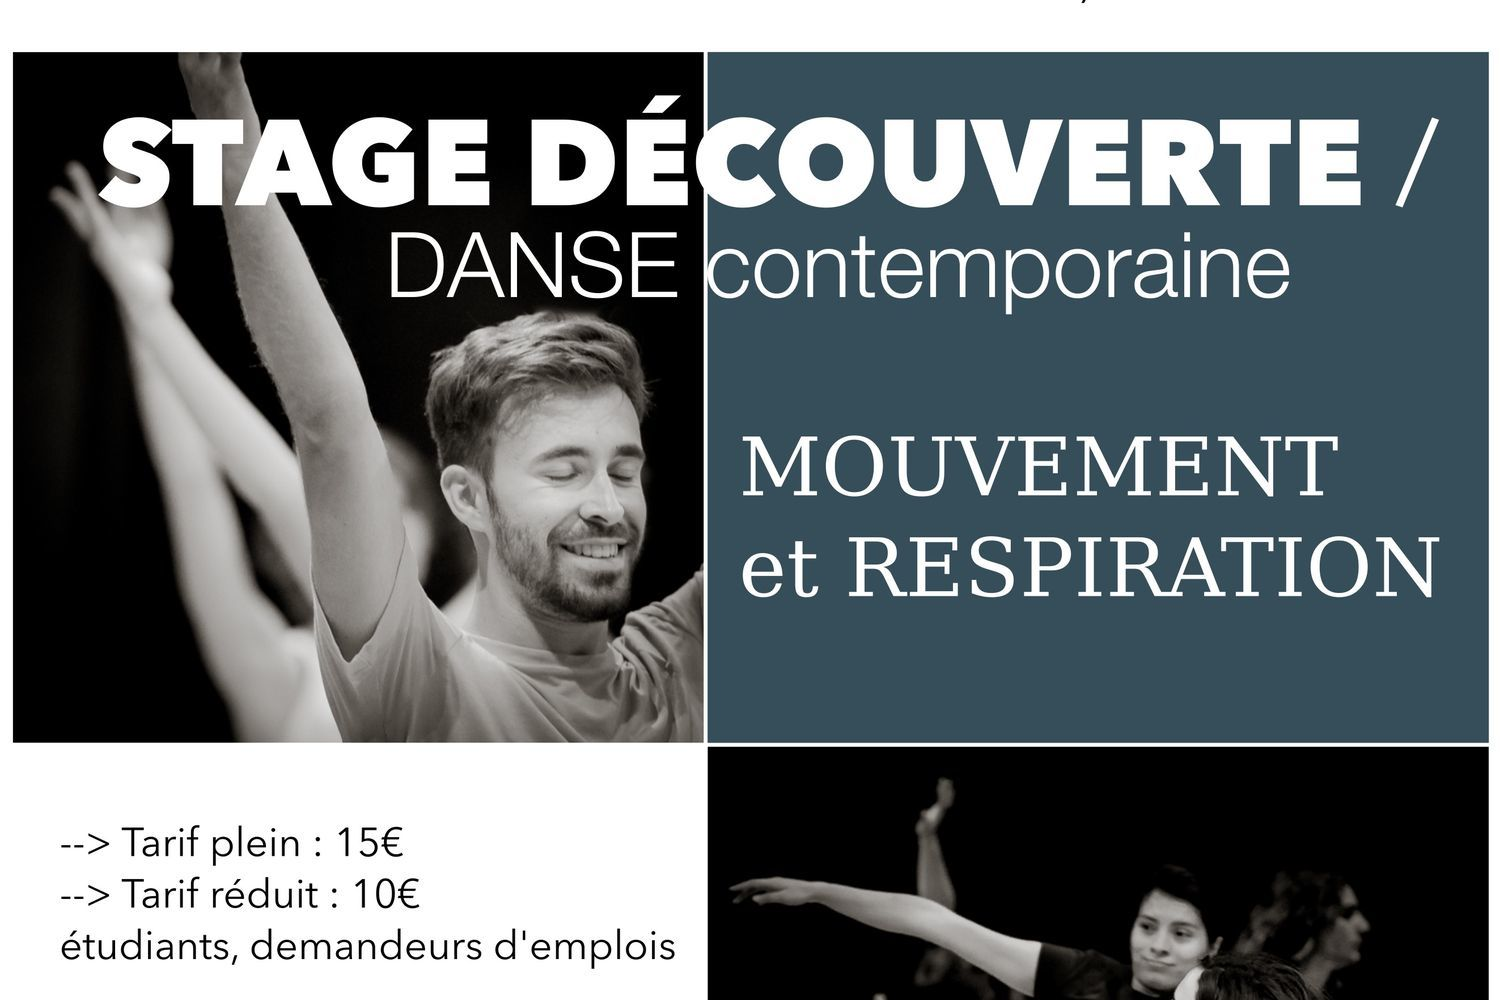 Stage découverte en danse contemporaine